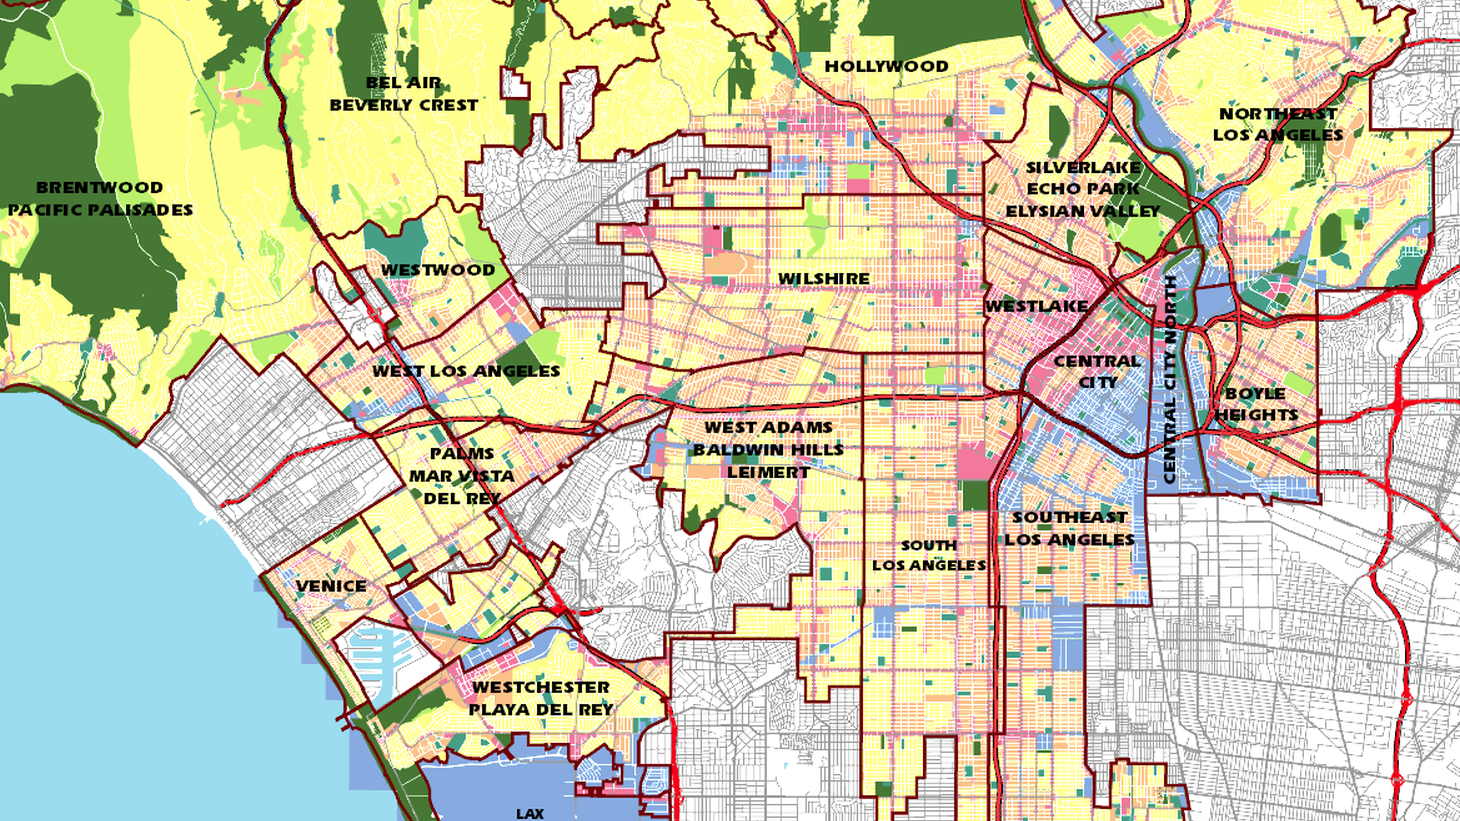 Zoning map from The Department of City Planning's Zone Information and Map Access System (ZIMAS)